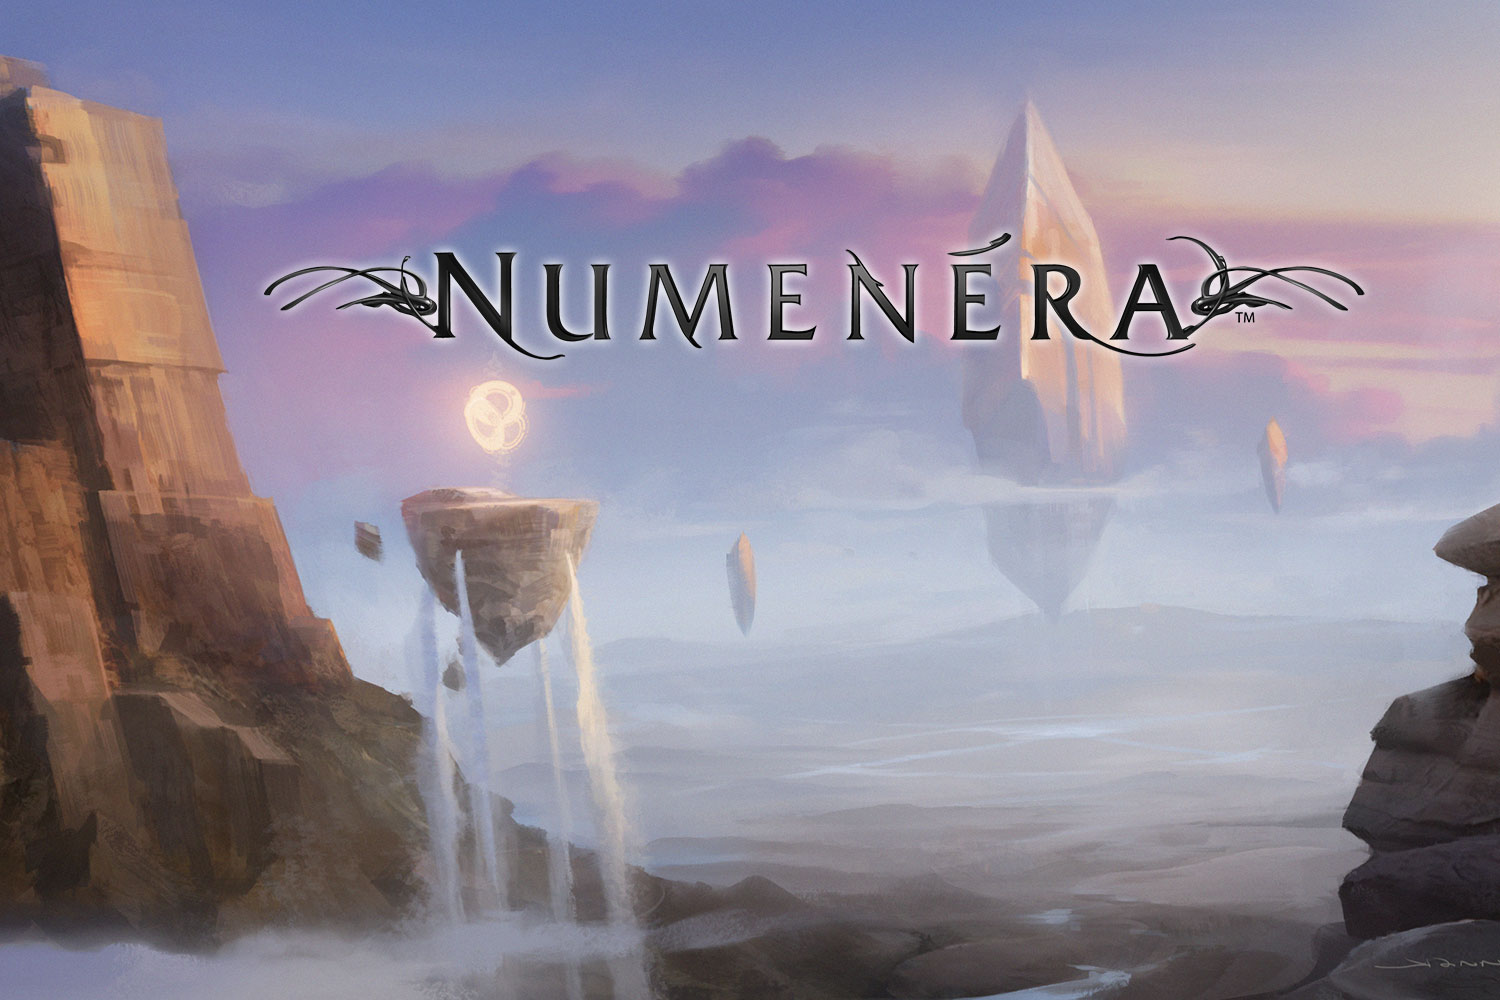 Review - 1 year on, Numenera & the Cypher System